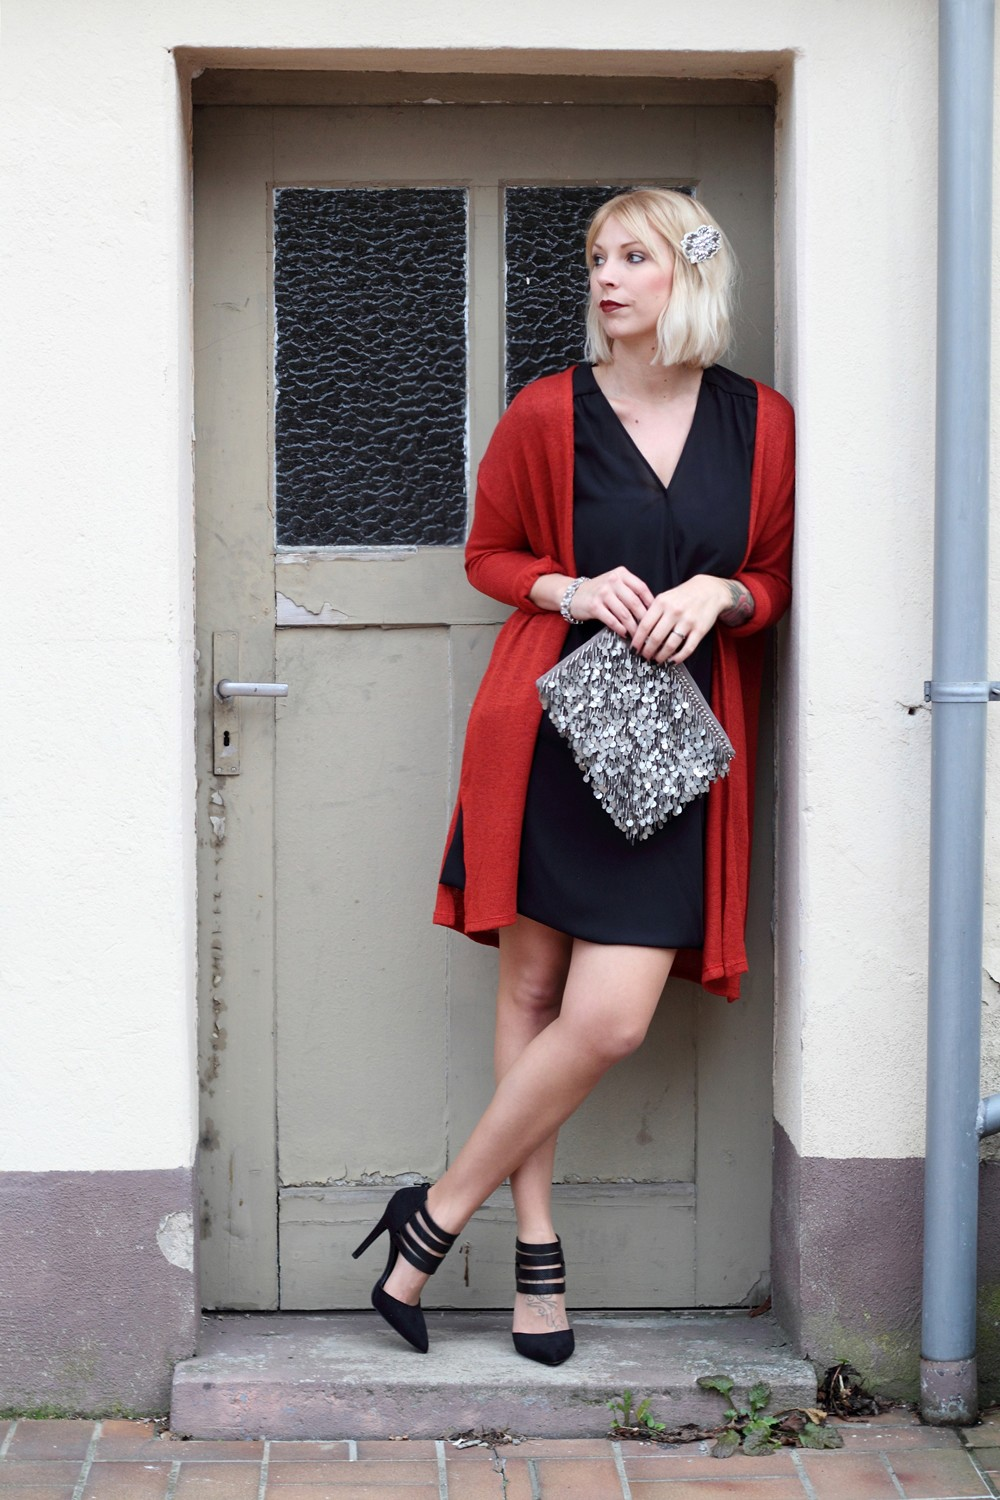 Fashionbloggerin Karlsruhe New Look Weihnachtsoutfit Kleid Pumps Pailettenclutch Cardigan 3